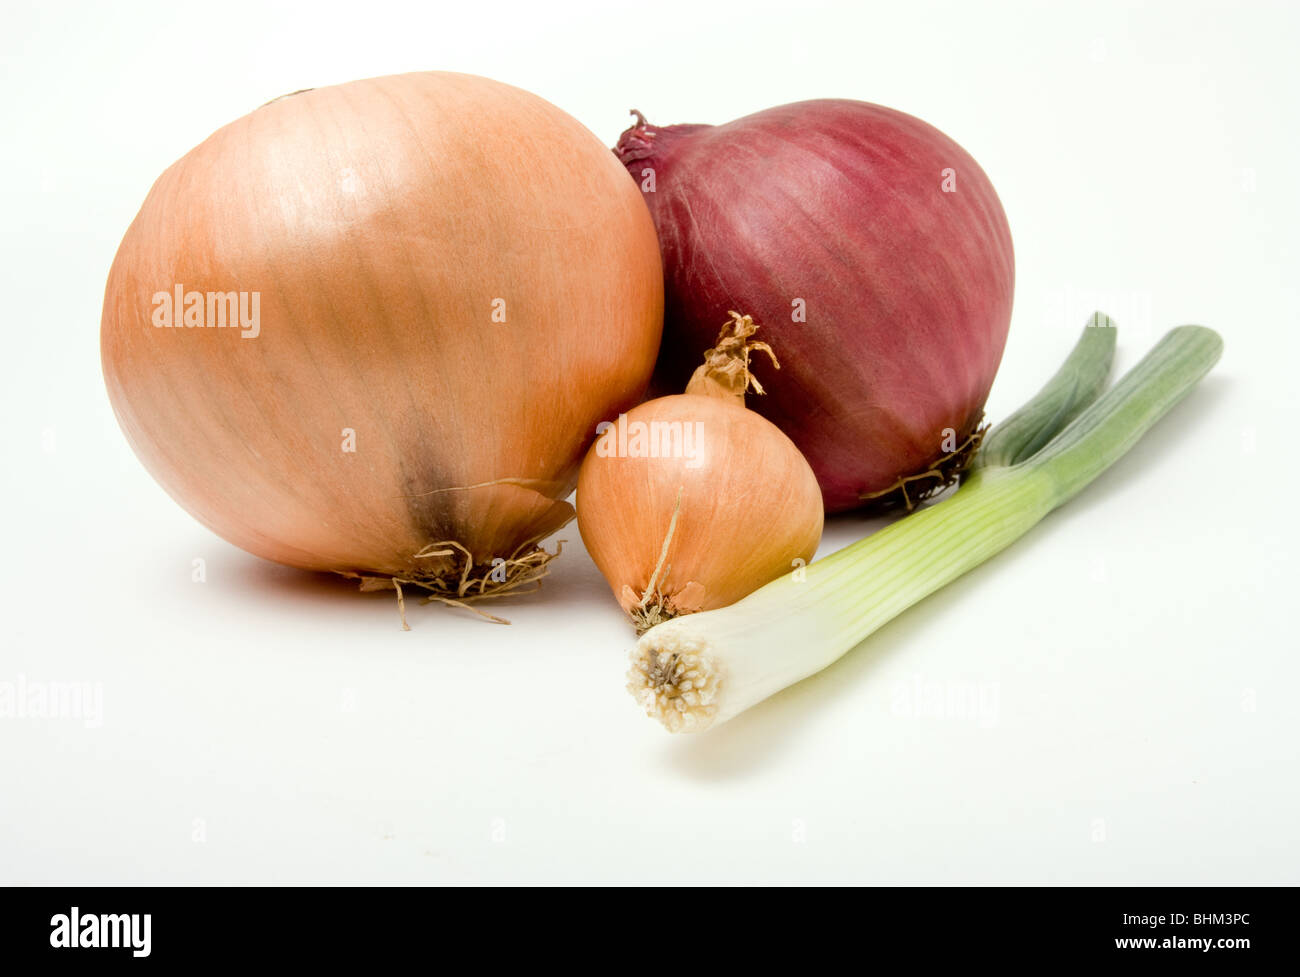 A selection of various onions from the Onion Family isolated against white background. - Stock Image